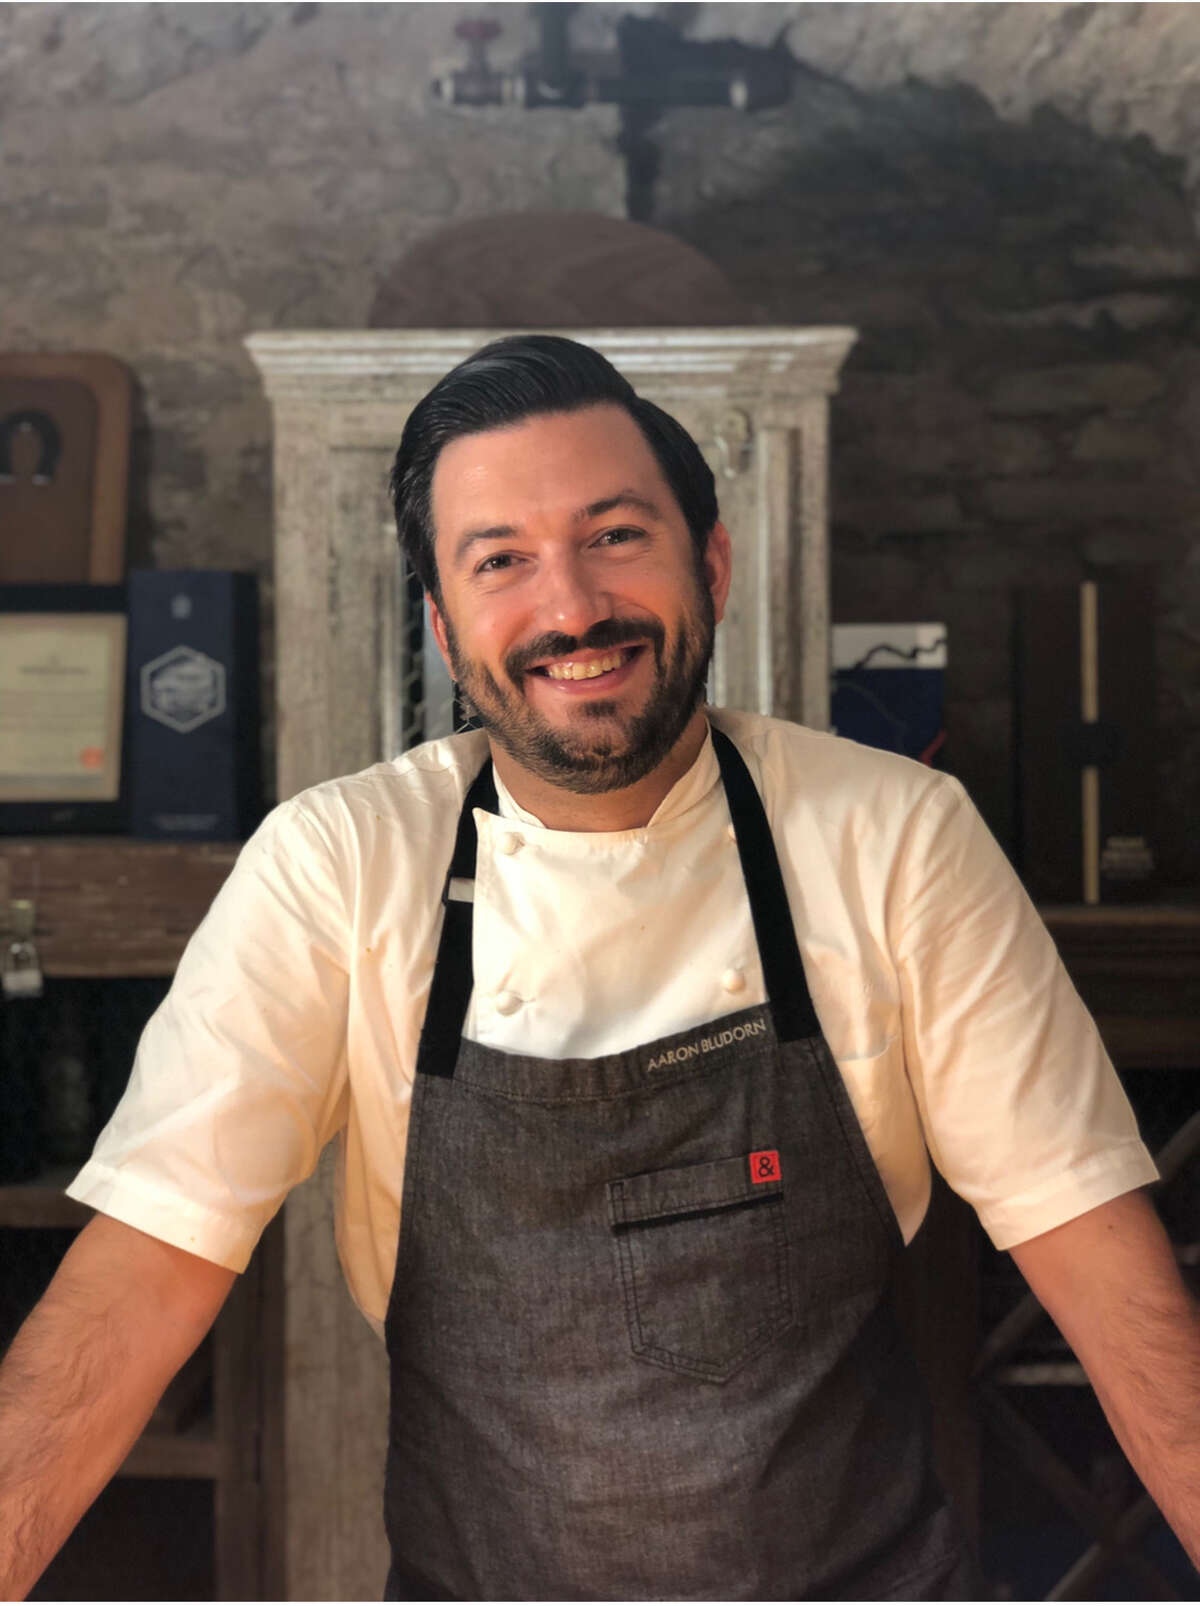 Aaron Bludorn, former executive chef of Cafe Boulud in New York, is opening a restaurant in summer 2020 in the former Pass & Provisions space at 807 Taft.